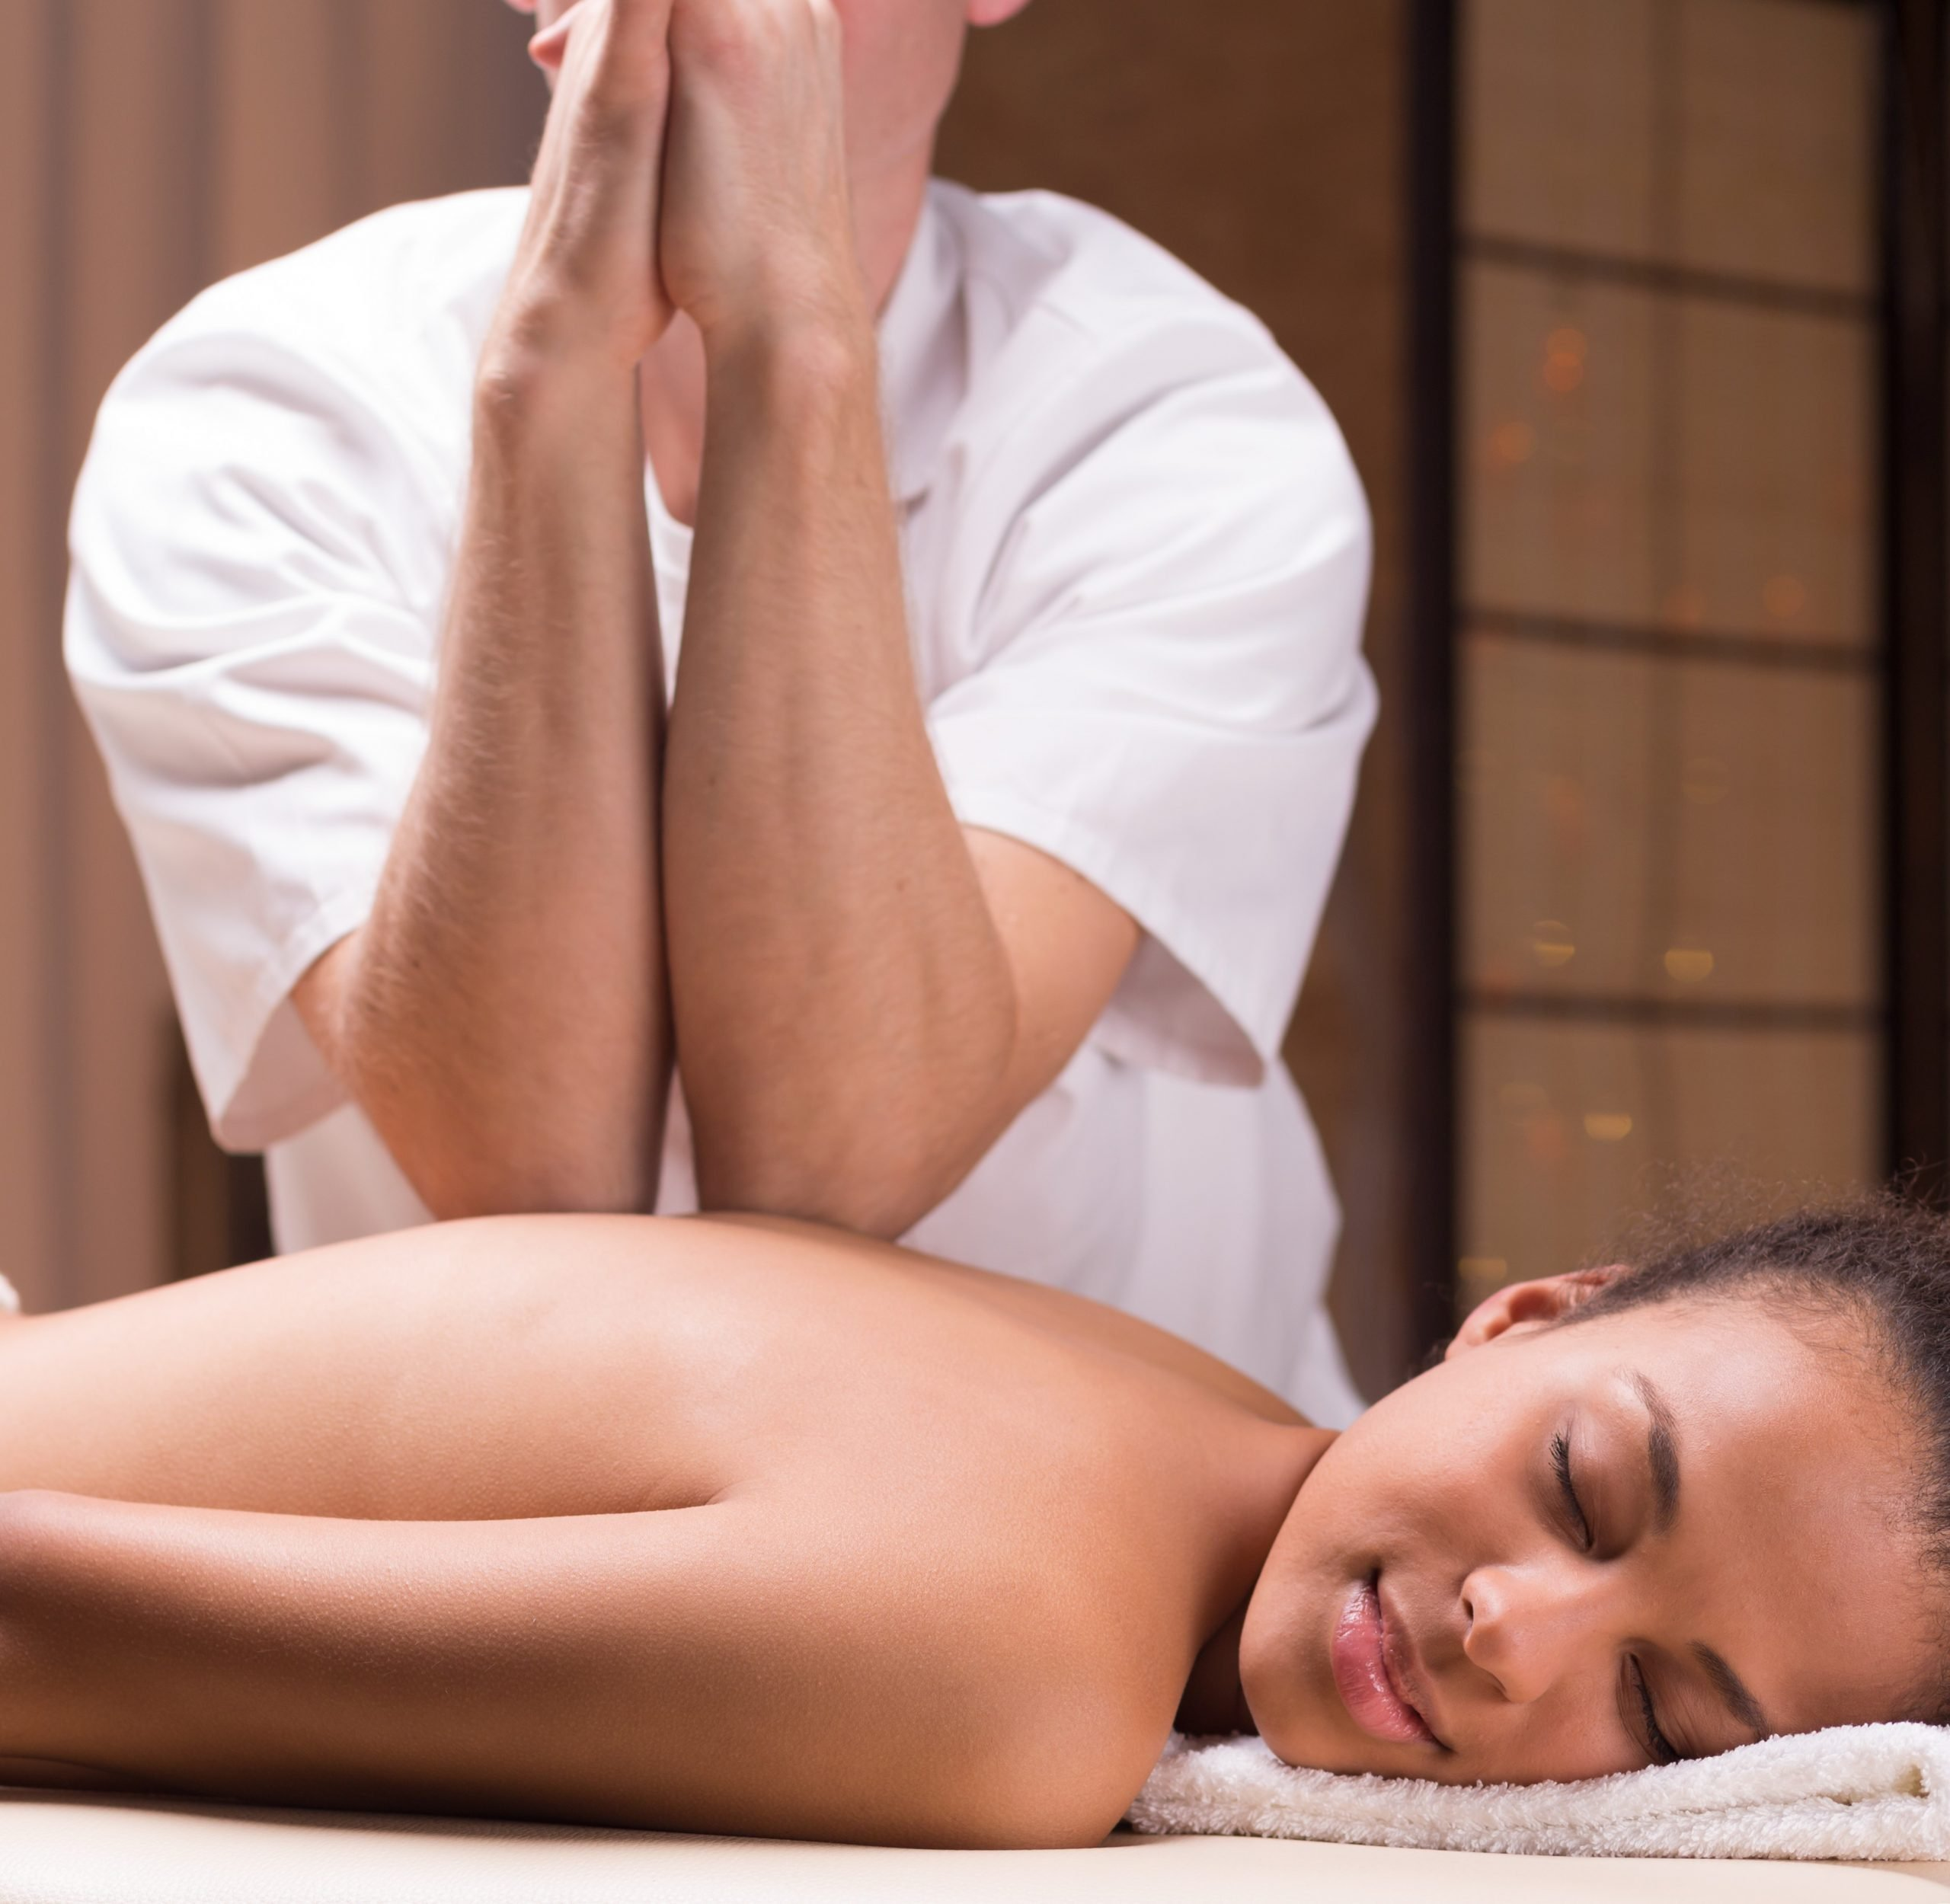 Thai Massage helps decrease muscle pain and stress with strong massage technique using palms and fingers. We come to your home with massage table, linens, candles, music and oil.